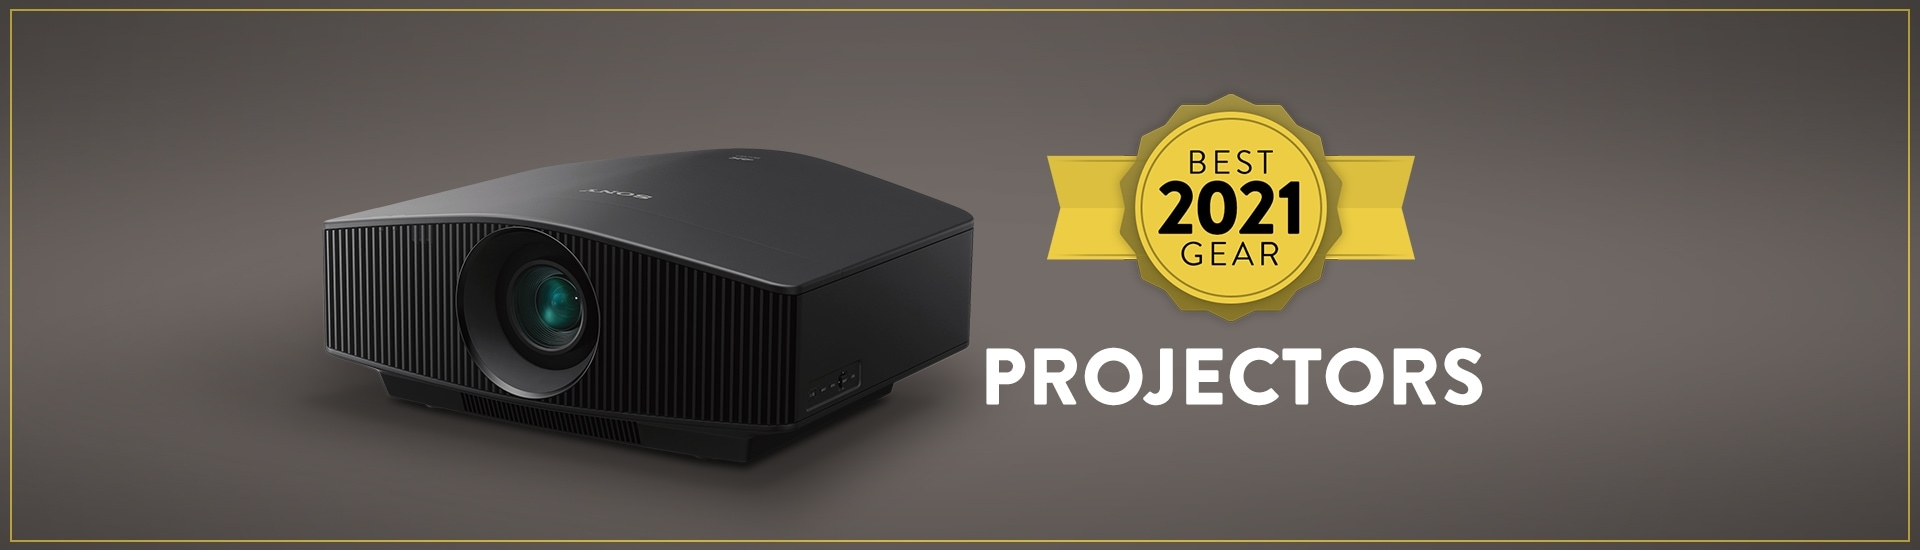 The Best Projectors of 2021